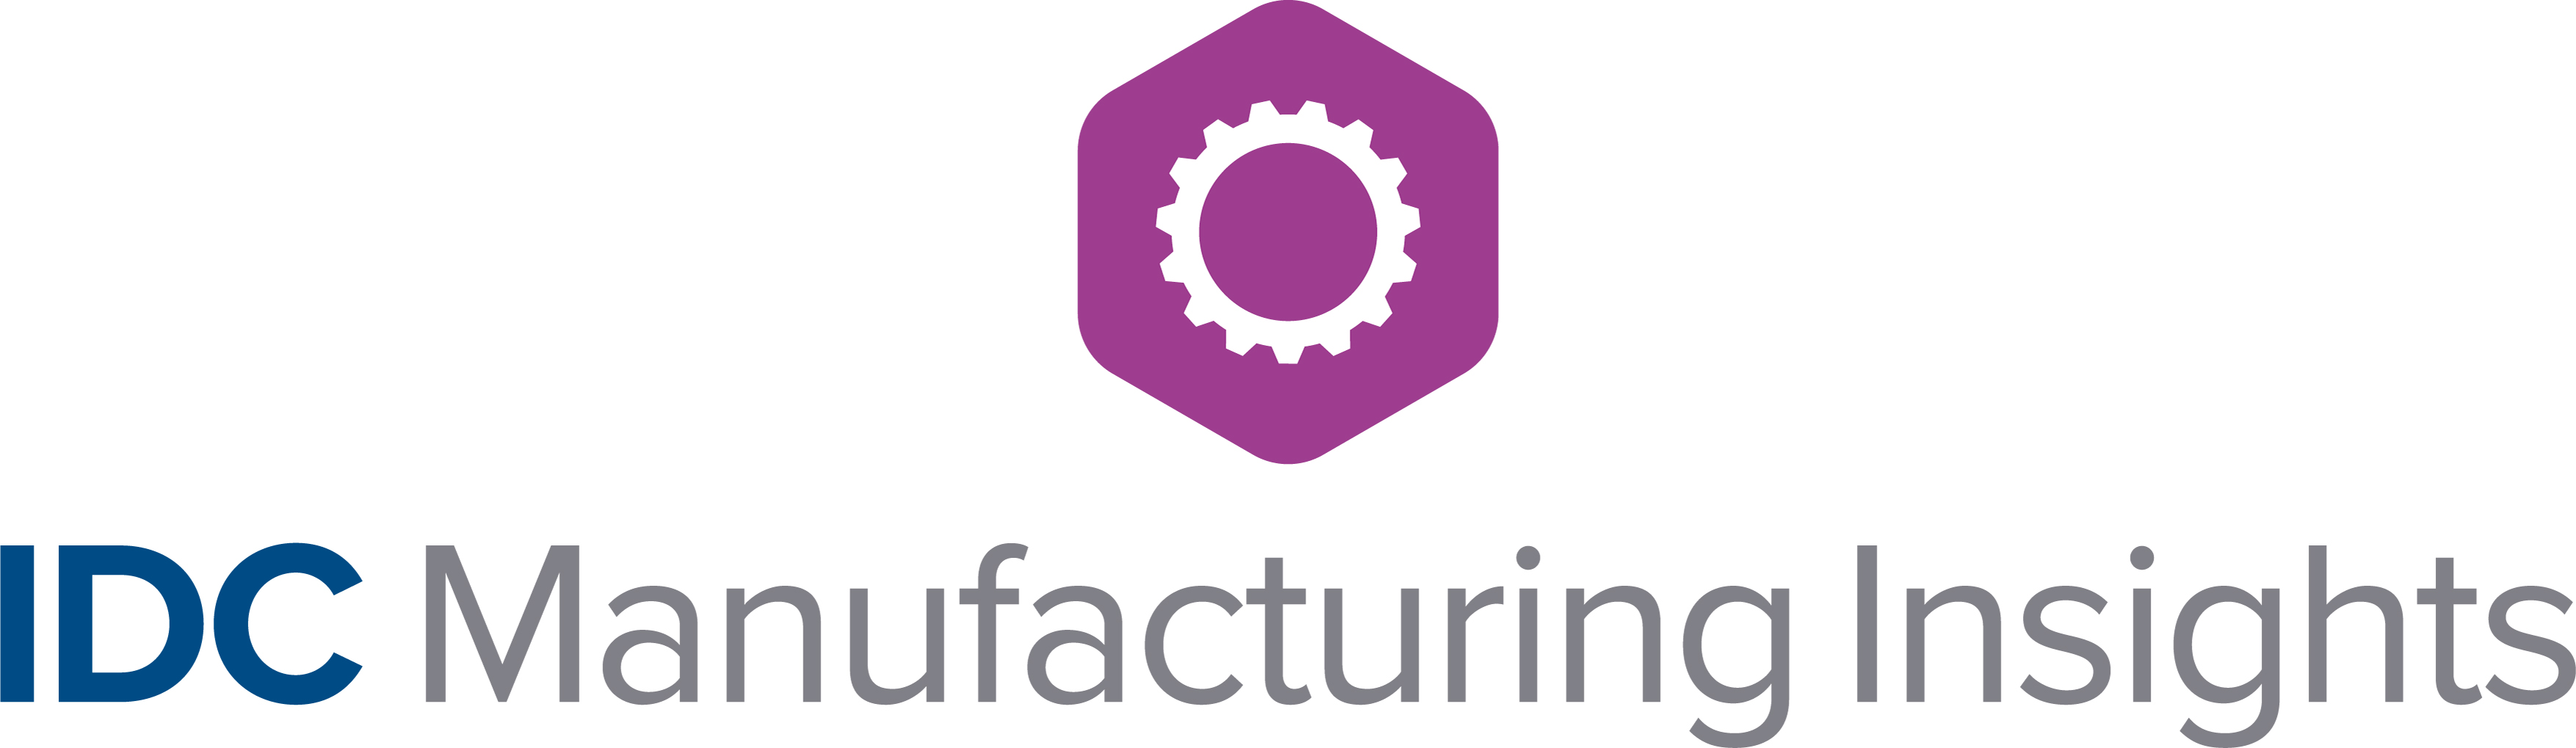 iconotype-insights-manufacturing-fullcolor-vertica